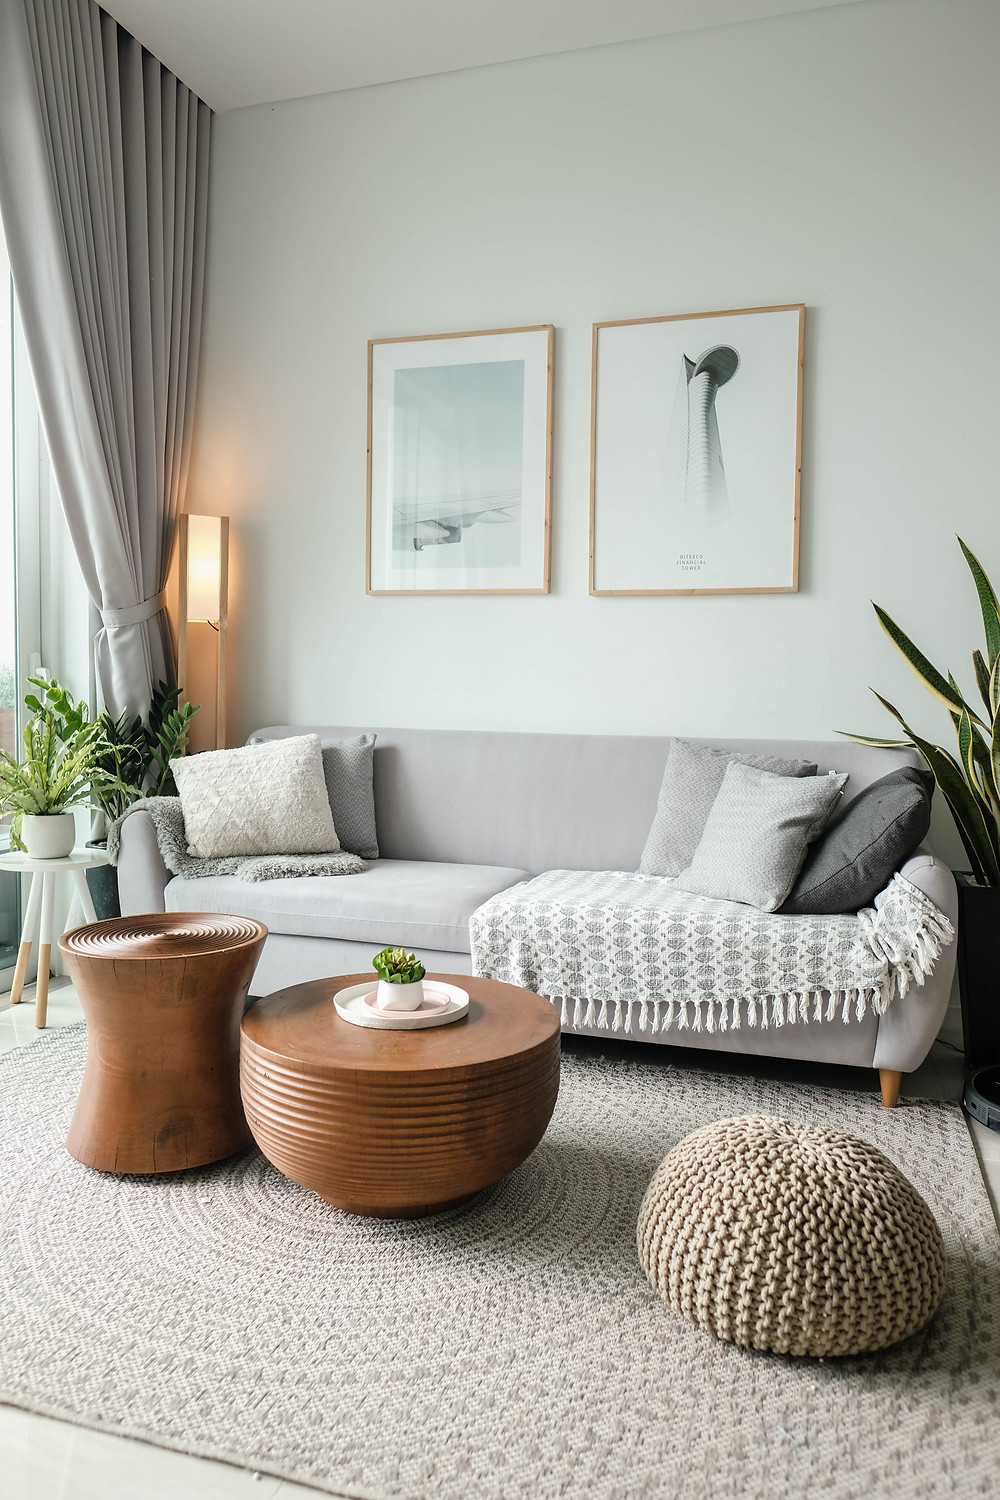 Comfy living room with sofa and bright interior